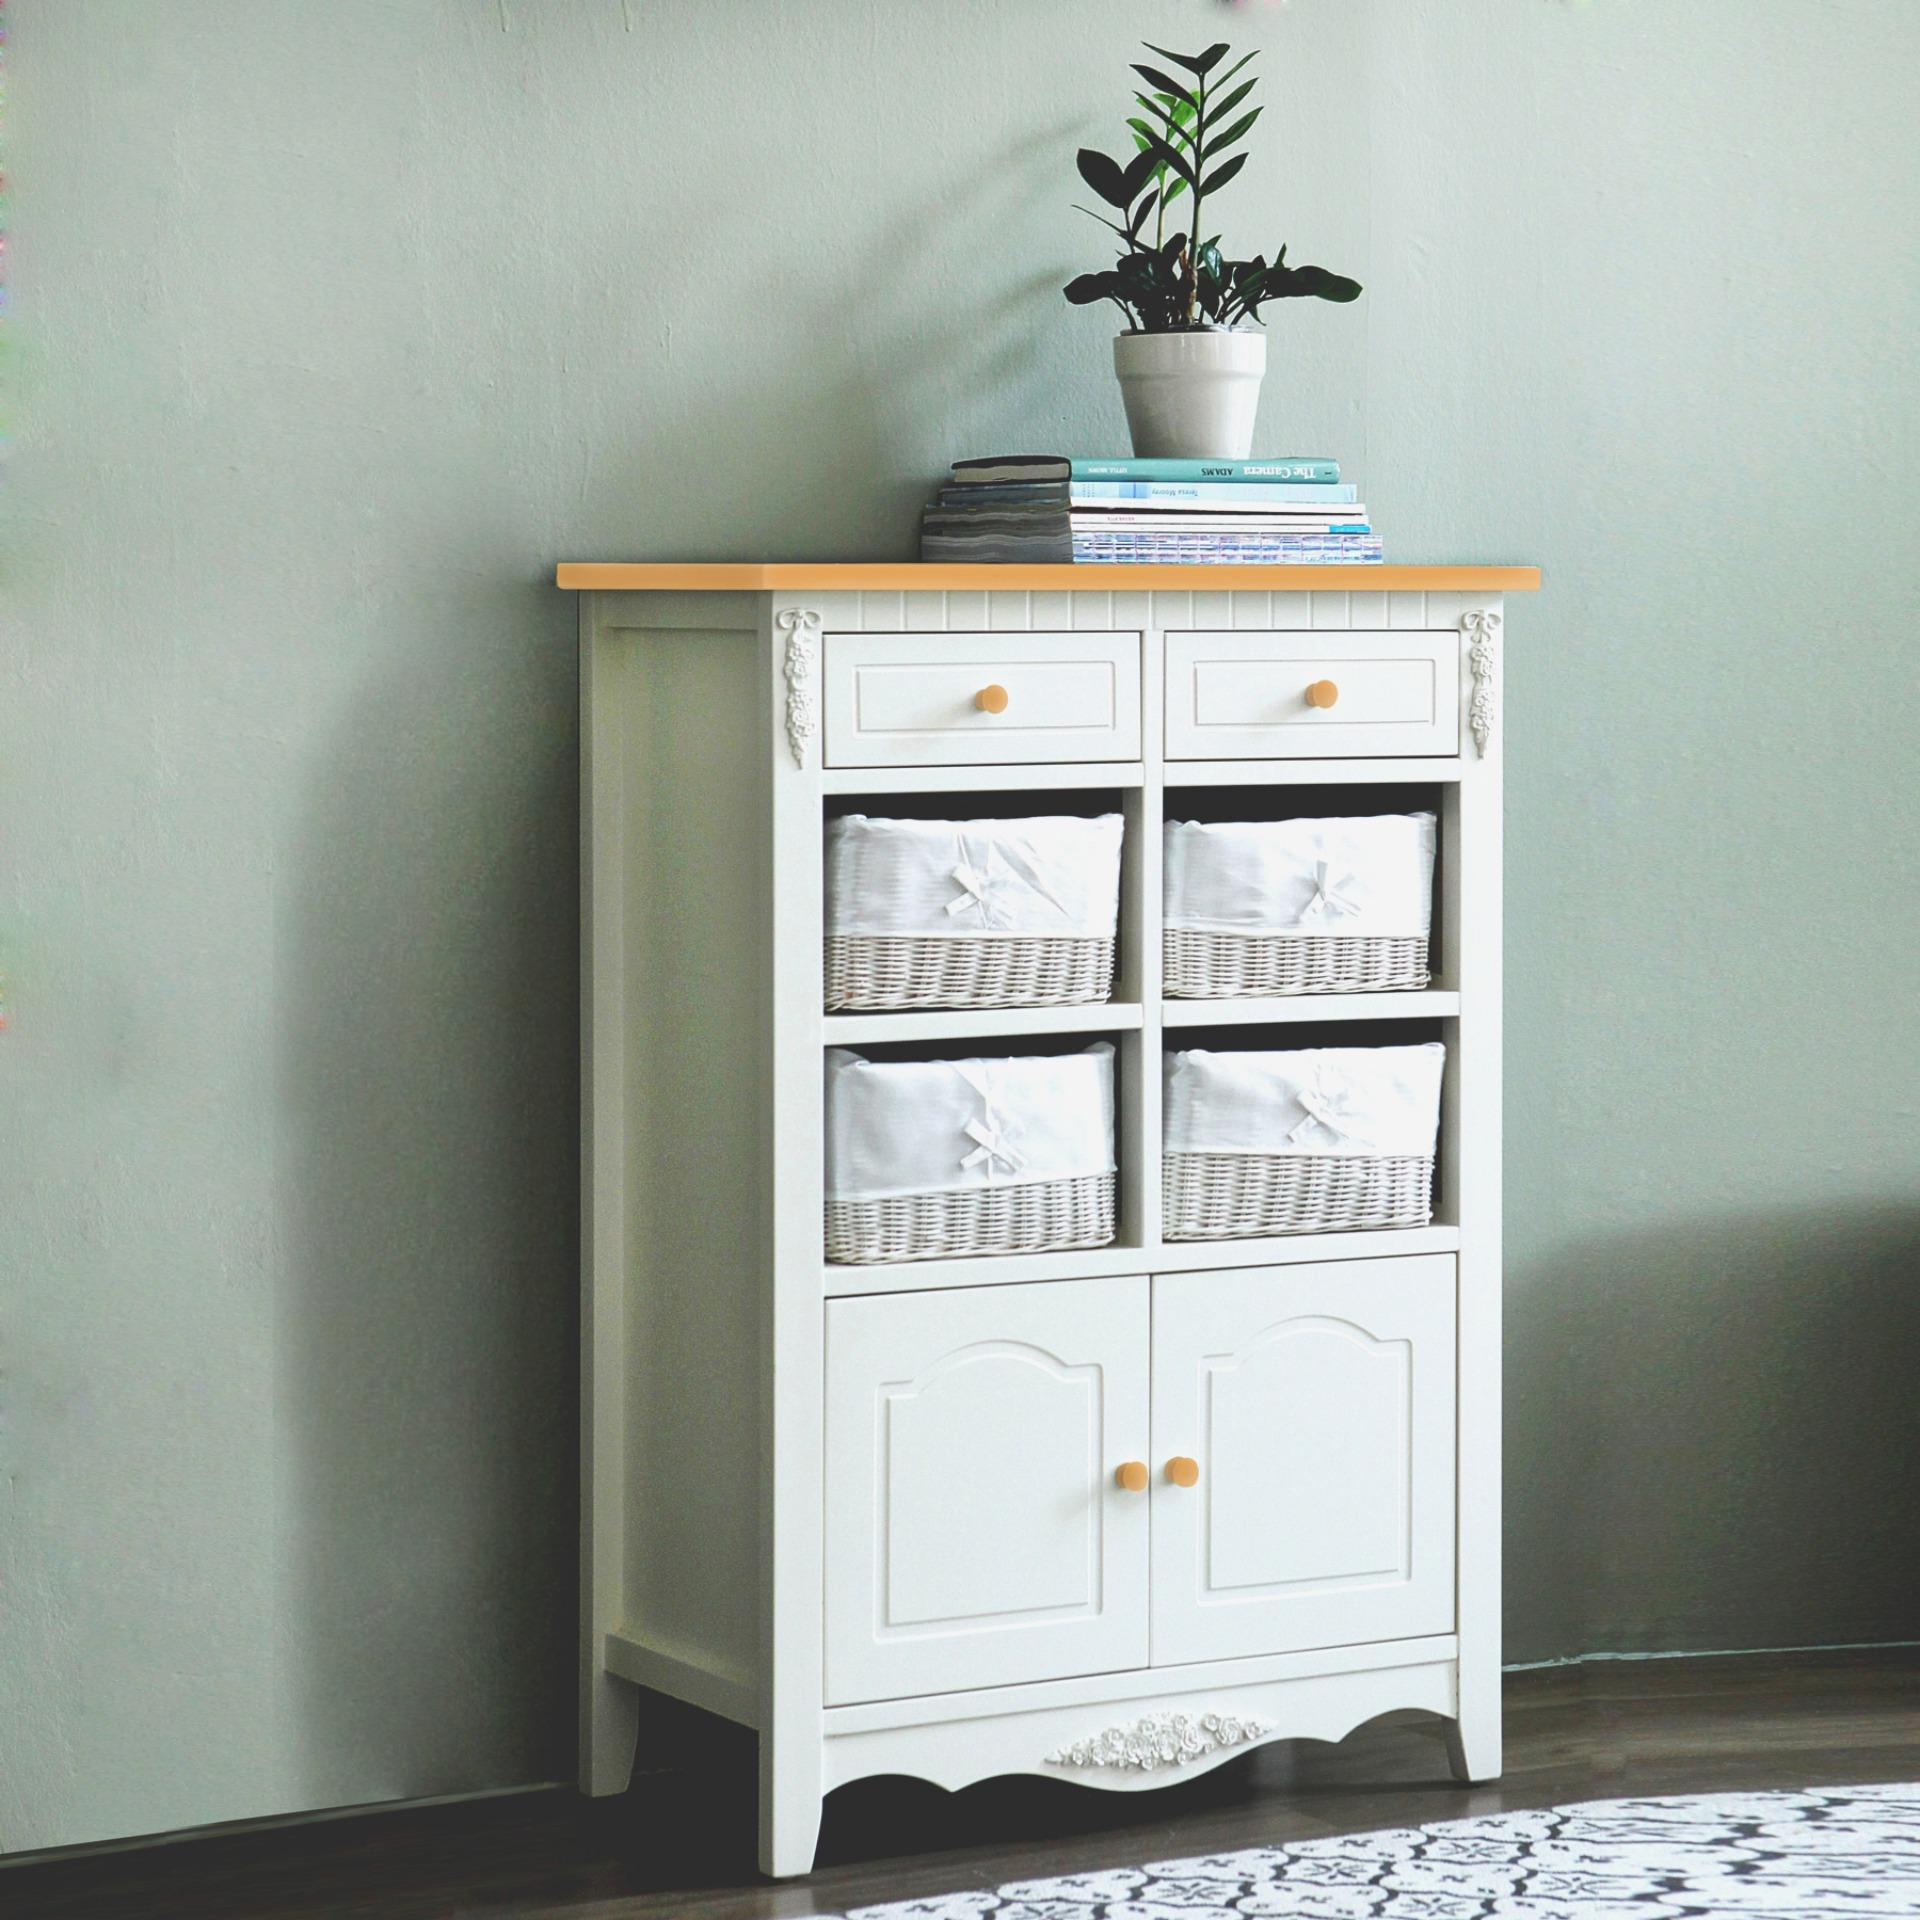 Ulasan Mengenai The Olive House Lemari Kabinet Jasmine 8 Drawers Top Oak